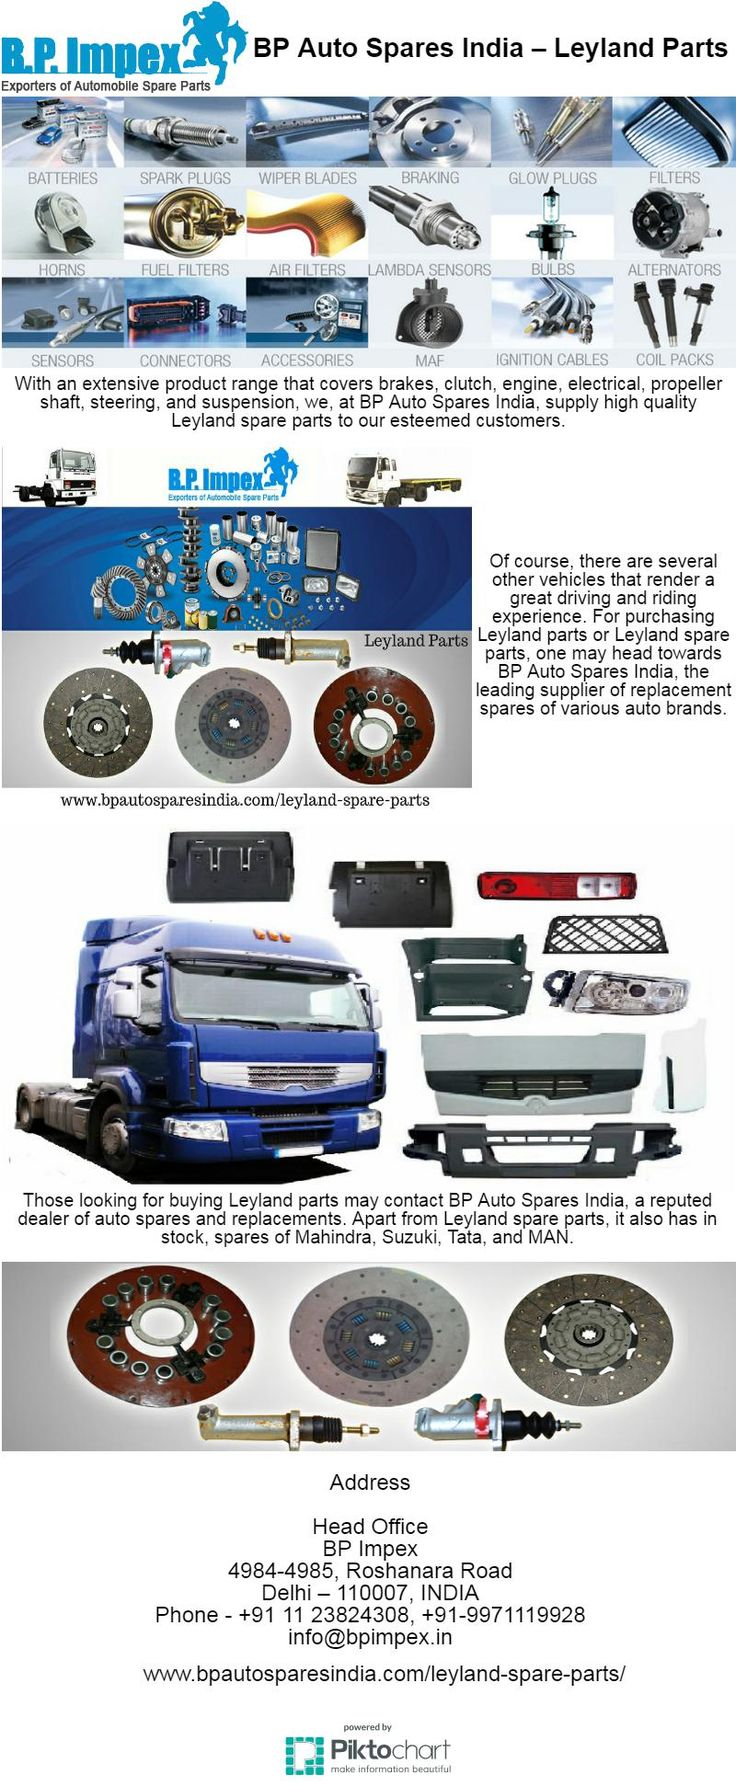 Leyland Parts looking for a reliable dealer to catering to the varied requirements of Ashok Leyland Falcon,Ashok Leyland 1112, Ashok Leyland Stallion spare parts by BP Auto Spares India.